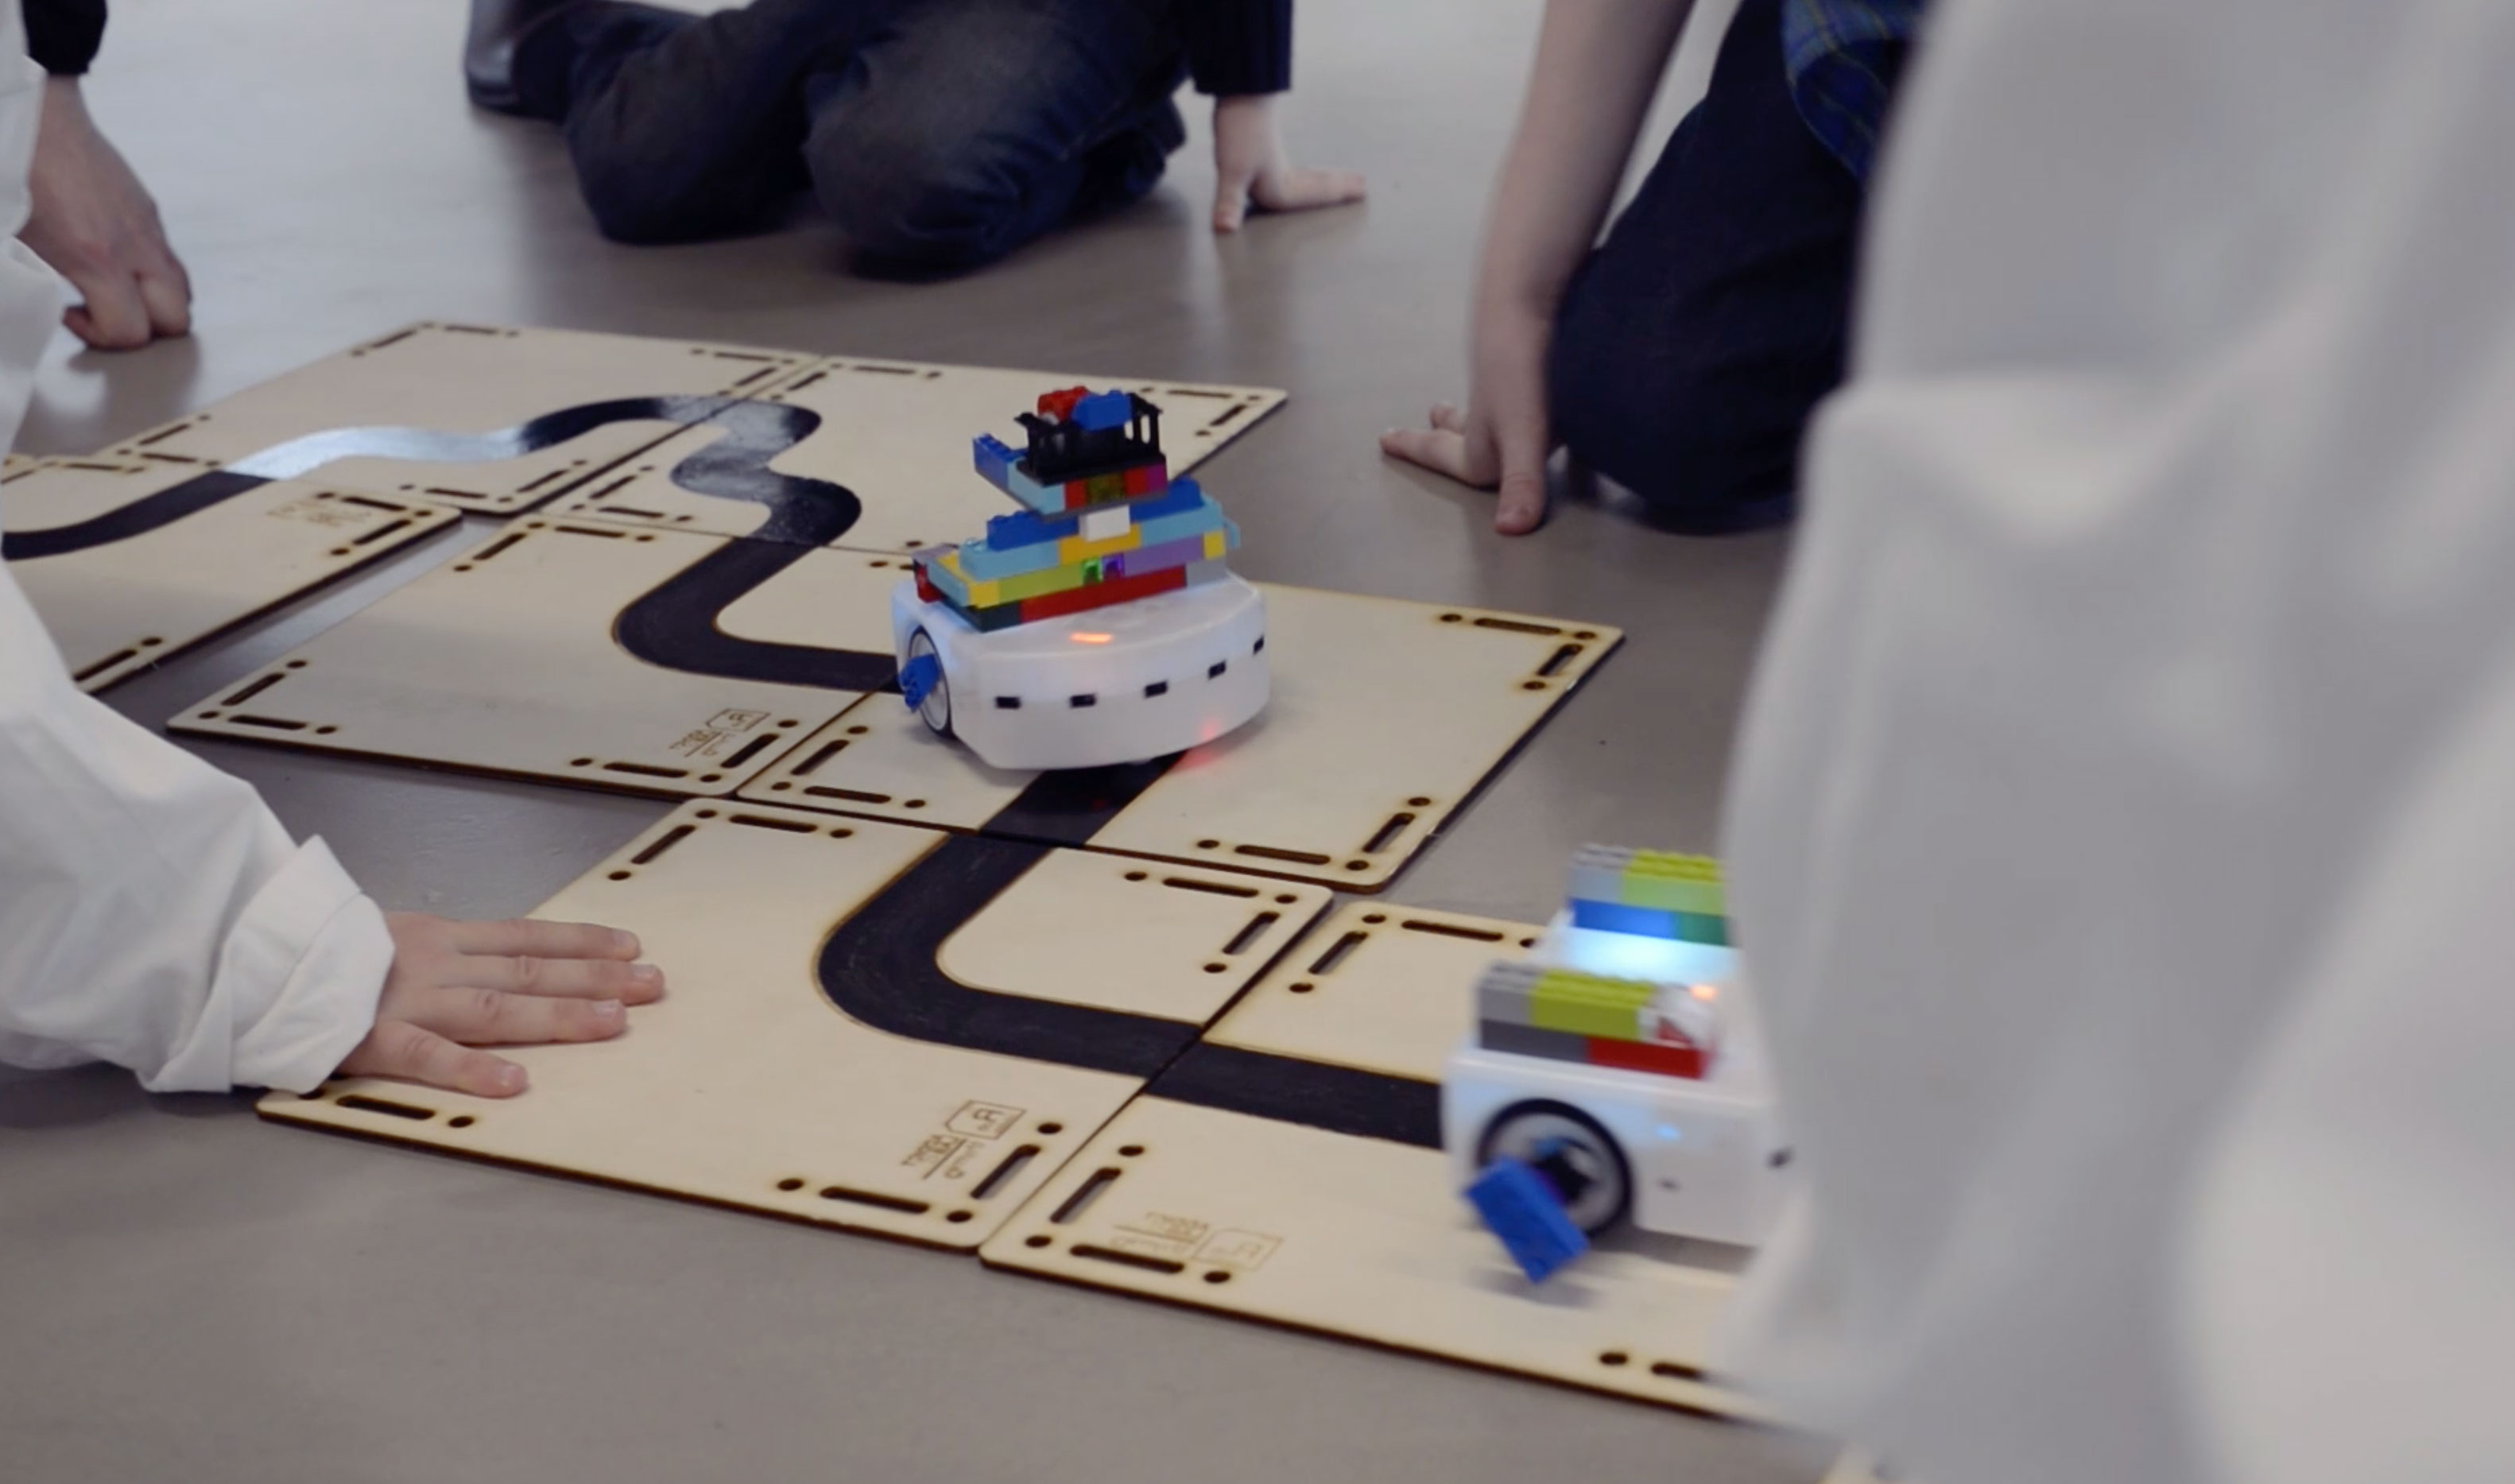 Kids playing with Epfl's Thymio robots on laser cut wooden tracks made by Addictlab Academy during a birthday party